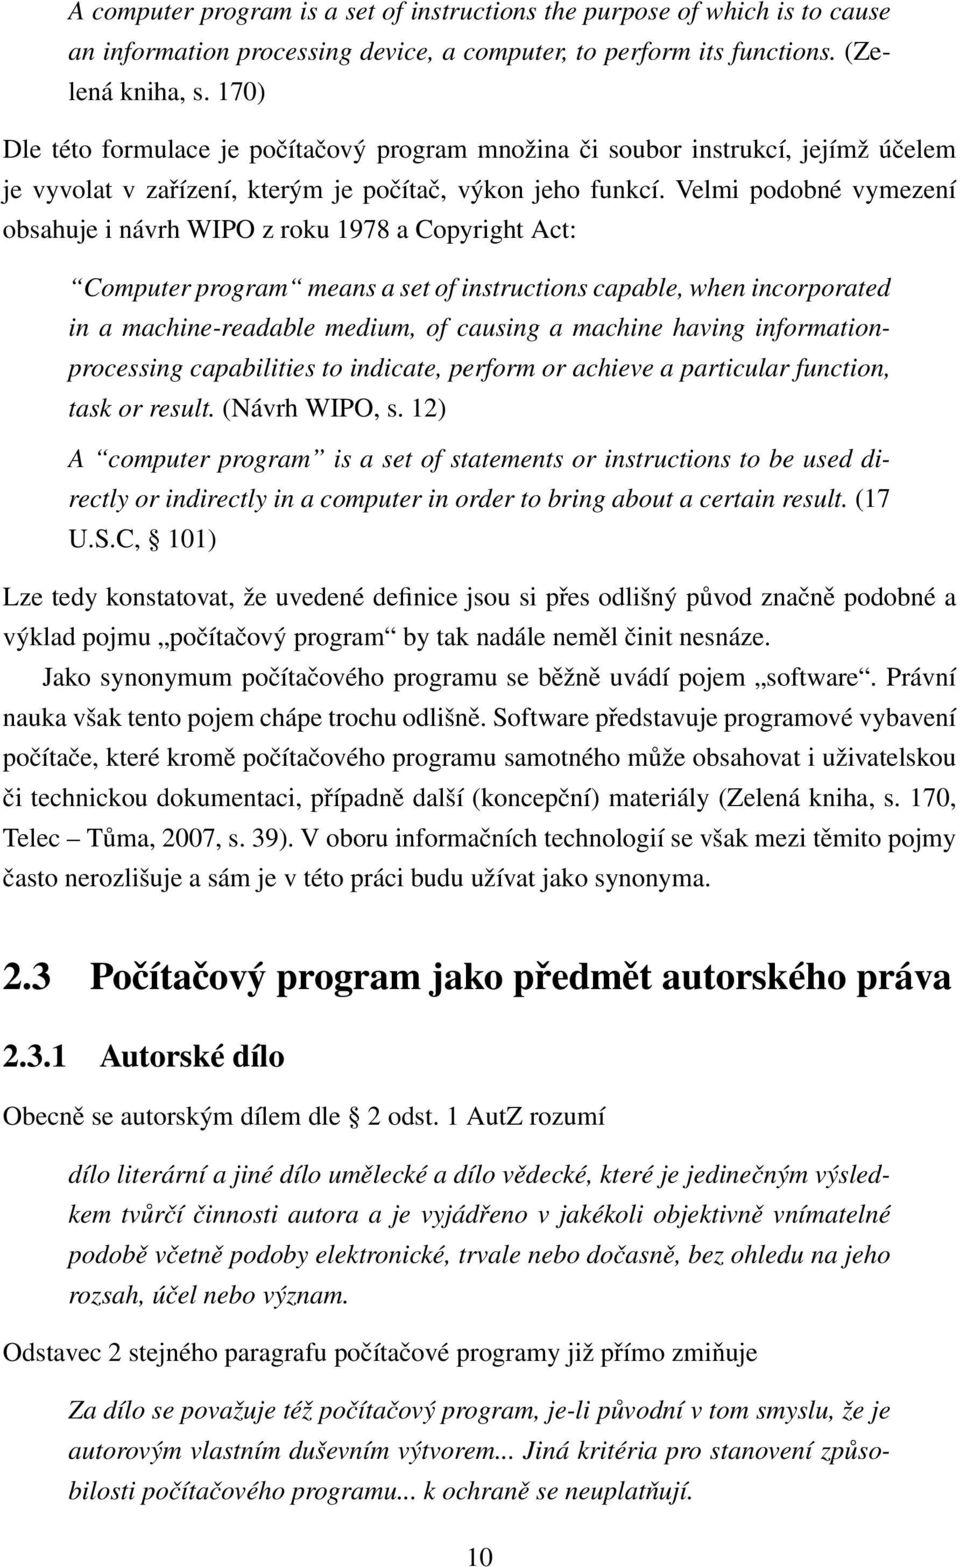 Velmi podobné vymezení obsahuje i návrh WIPO z roku 1978 a Copyright Act: Computer program means a set of instructions capable, when incorporated in a machine-readable medium, of causing a machine